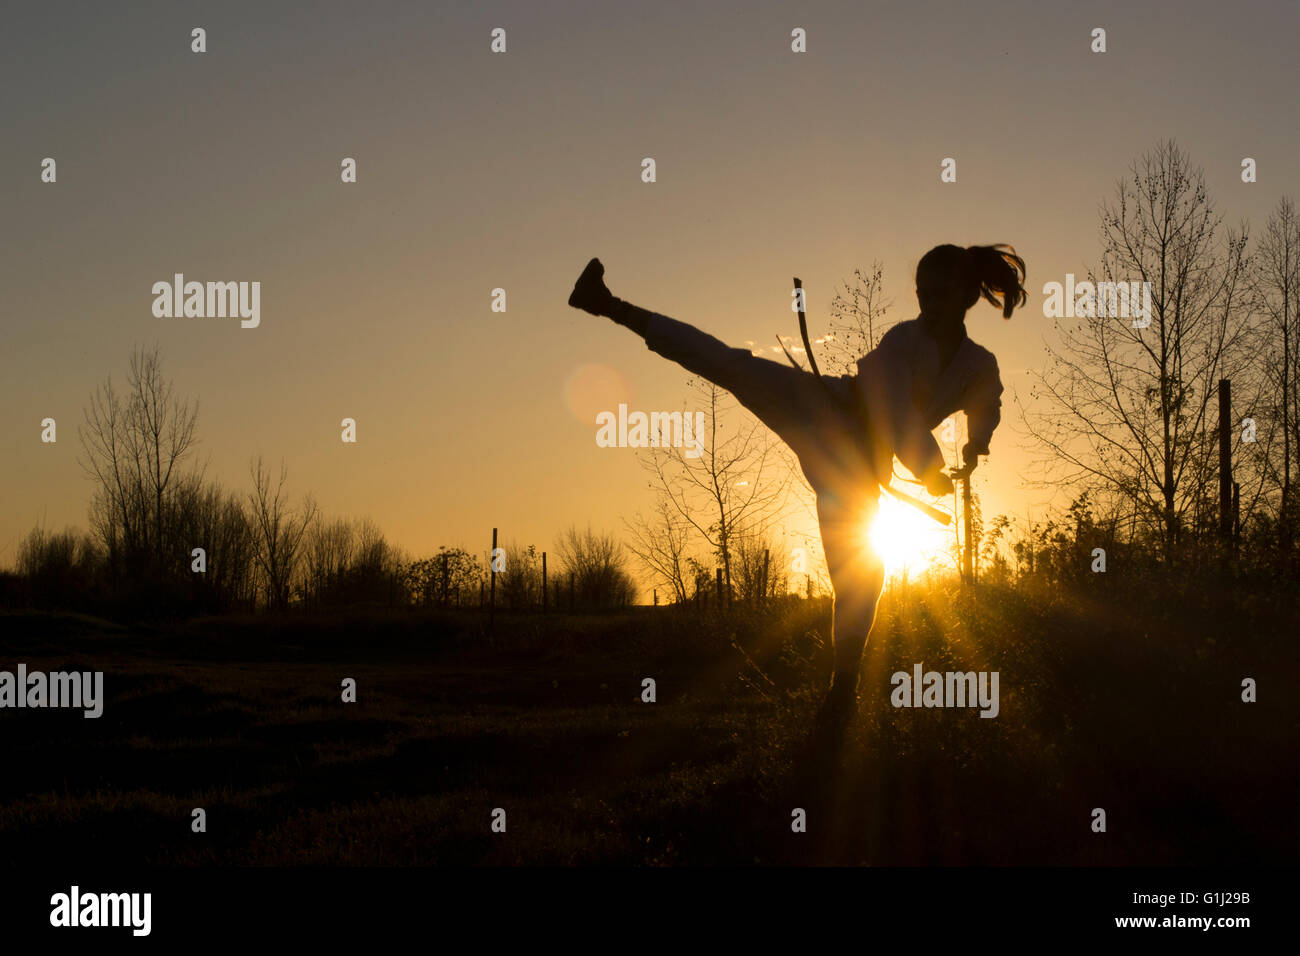 Silhouette of a girl practicing Taekwondo martial art - Stock Image